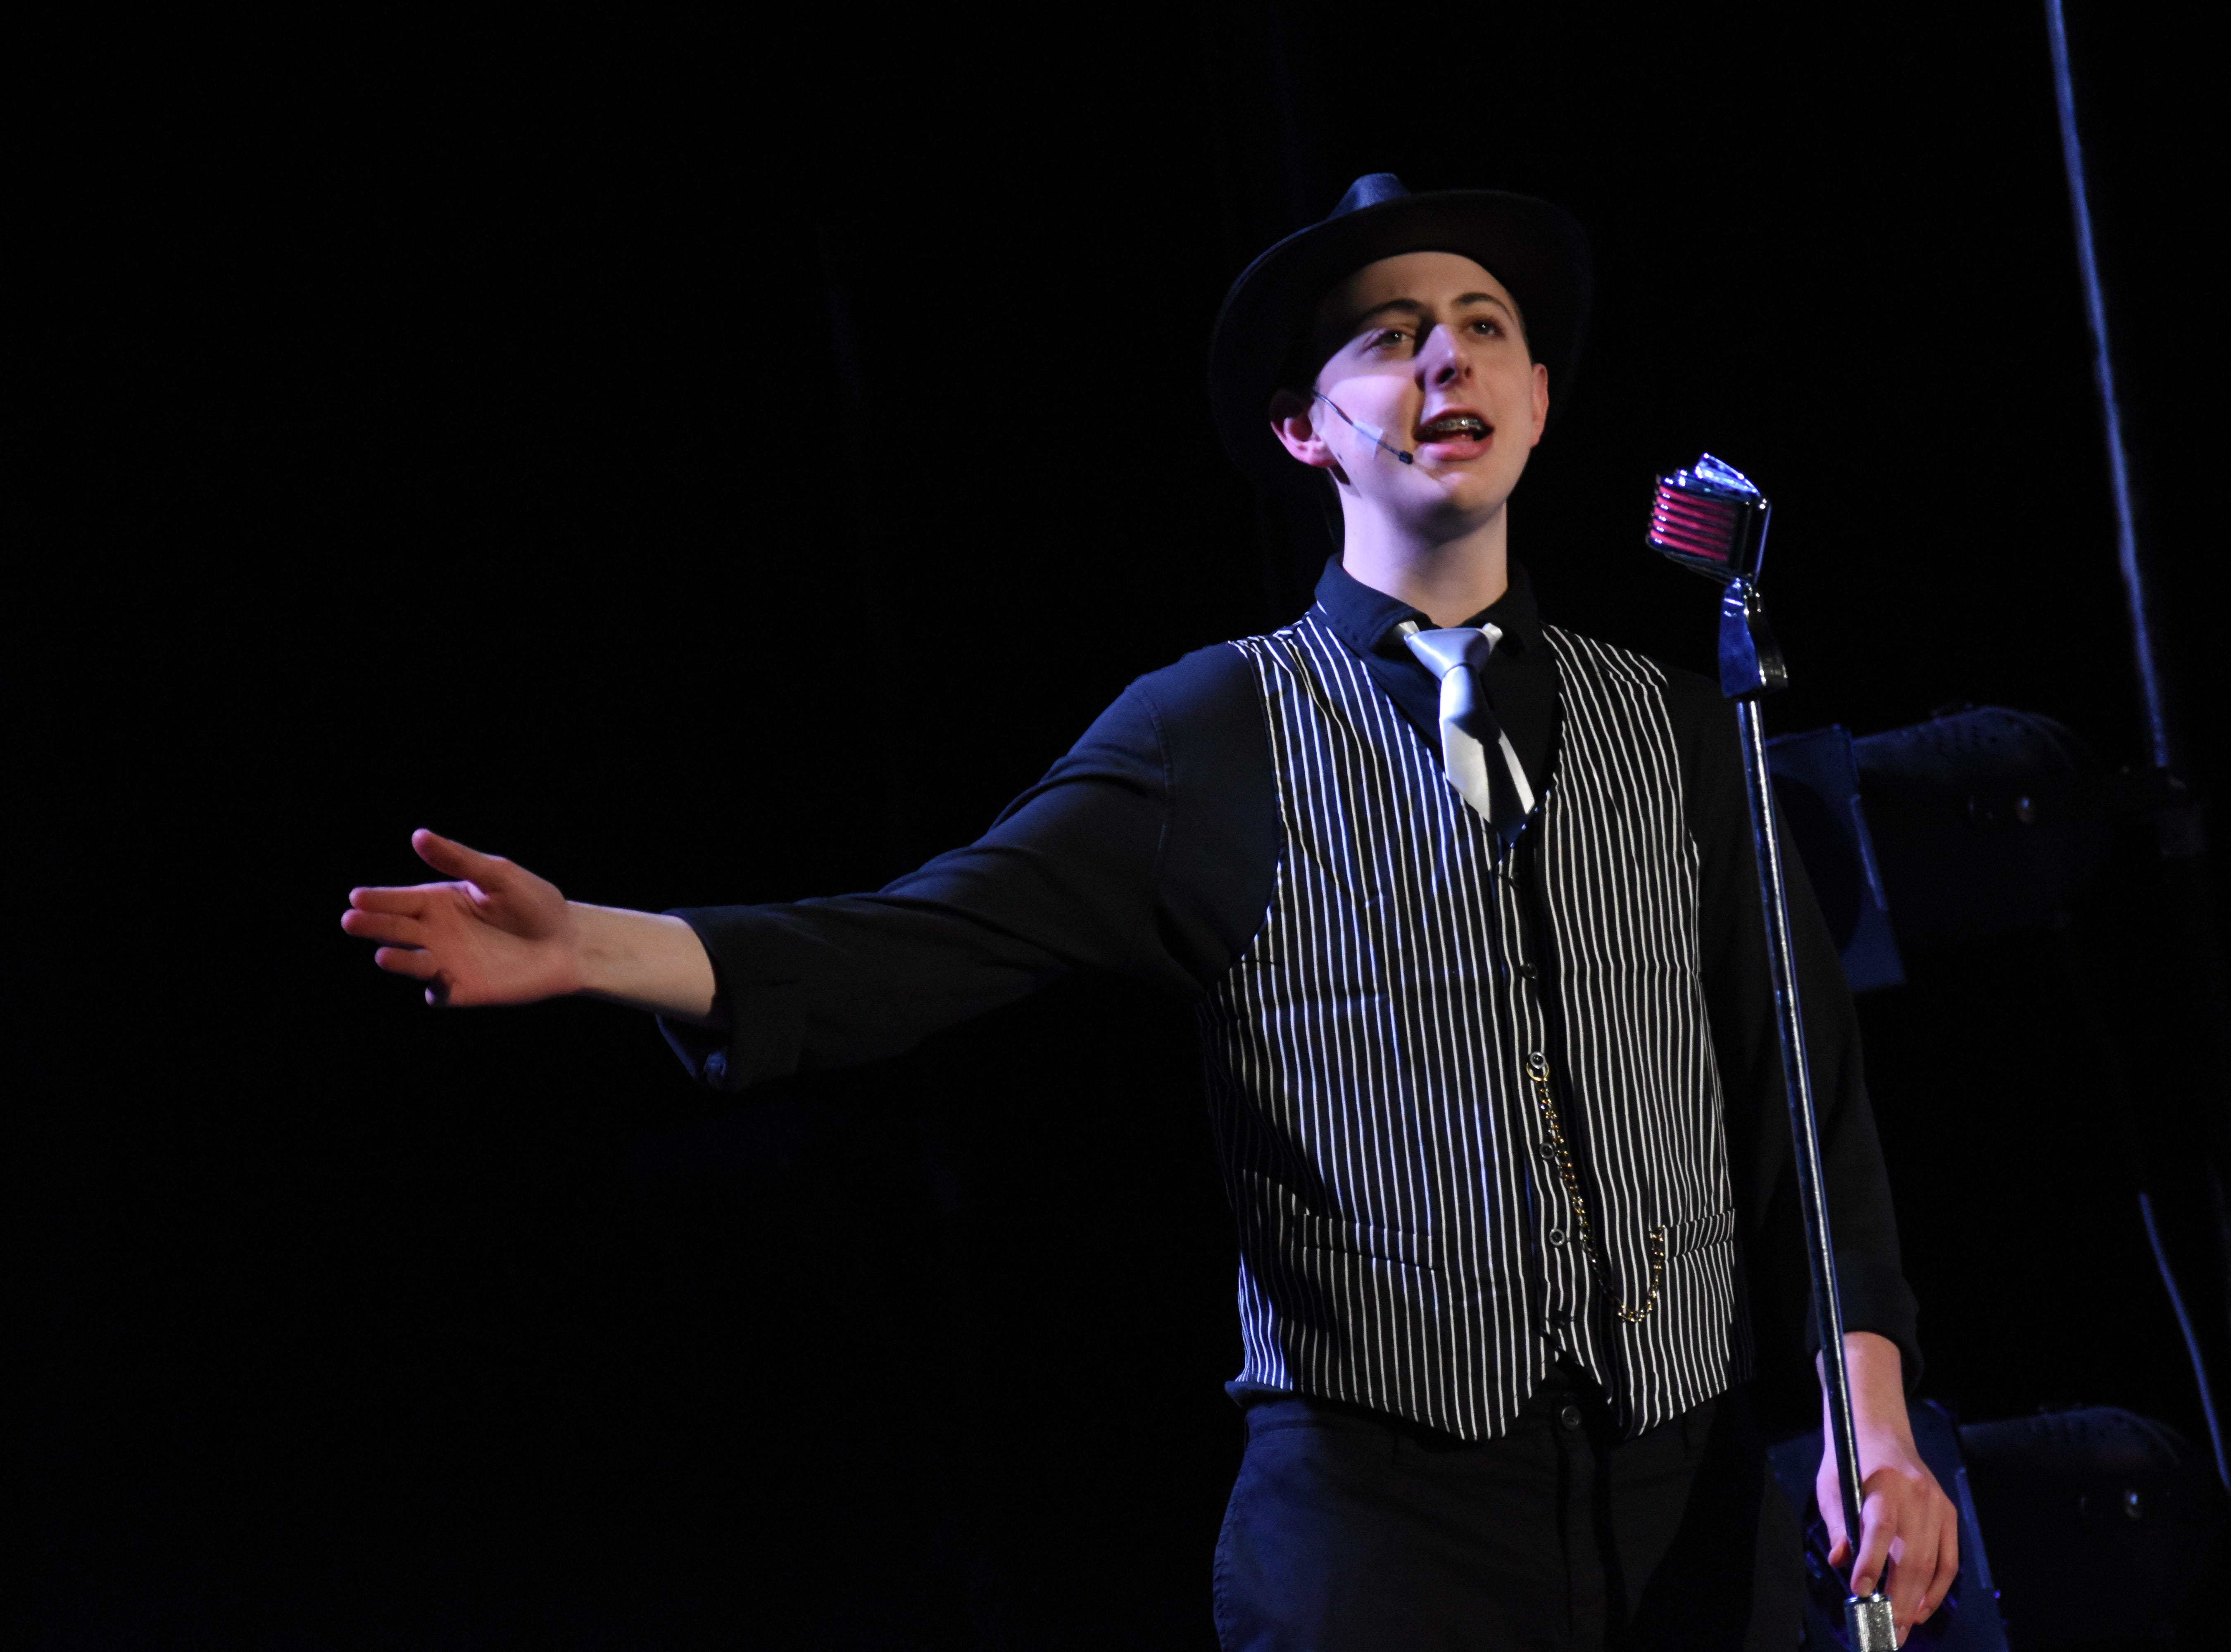 """Pineville High School Theatre's production of """"Chicago (High School Edition)"""" is set to open at 7 p.m. Thursday, Feb. 21, 2019 in the PHS auditorium. The show will be at 7 p.m. Friday and Saturday and at 2 p.m. Sunday. Tickets are $13.50 for adults, $10.50 for seniors and $8.50 for students. The musical, set in Chicago the 1920s, is about a married woman named Roxie Hart who murders a man with which she is having an affair. She is convicted and sentenced to death. She and another convict at the prison, Velma Kelly, vie for fame, fortune and headlines in the newspapers. Alyssa McClain stars as Roxie; Mia Huffman as Velma; Nico Zona as Billy Flynn; Gabrielle Bernard as Matron """"Mama"""" Morton and Kaiden Carbaugh as Amos Hart.Tickets can be purchased at www.pinevillehightheatre.net."""